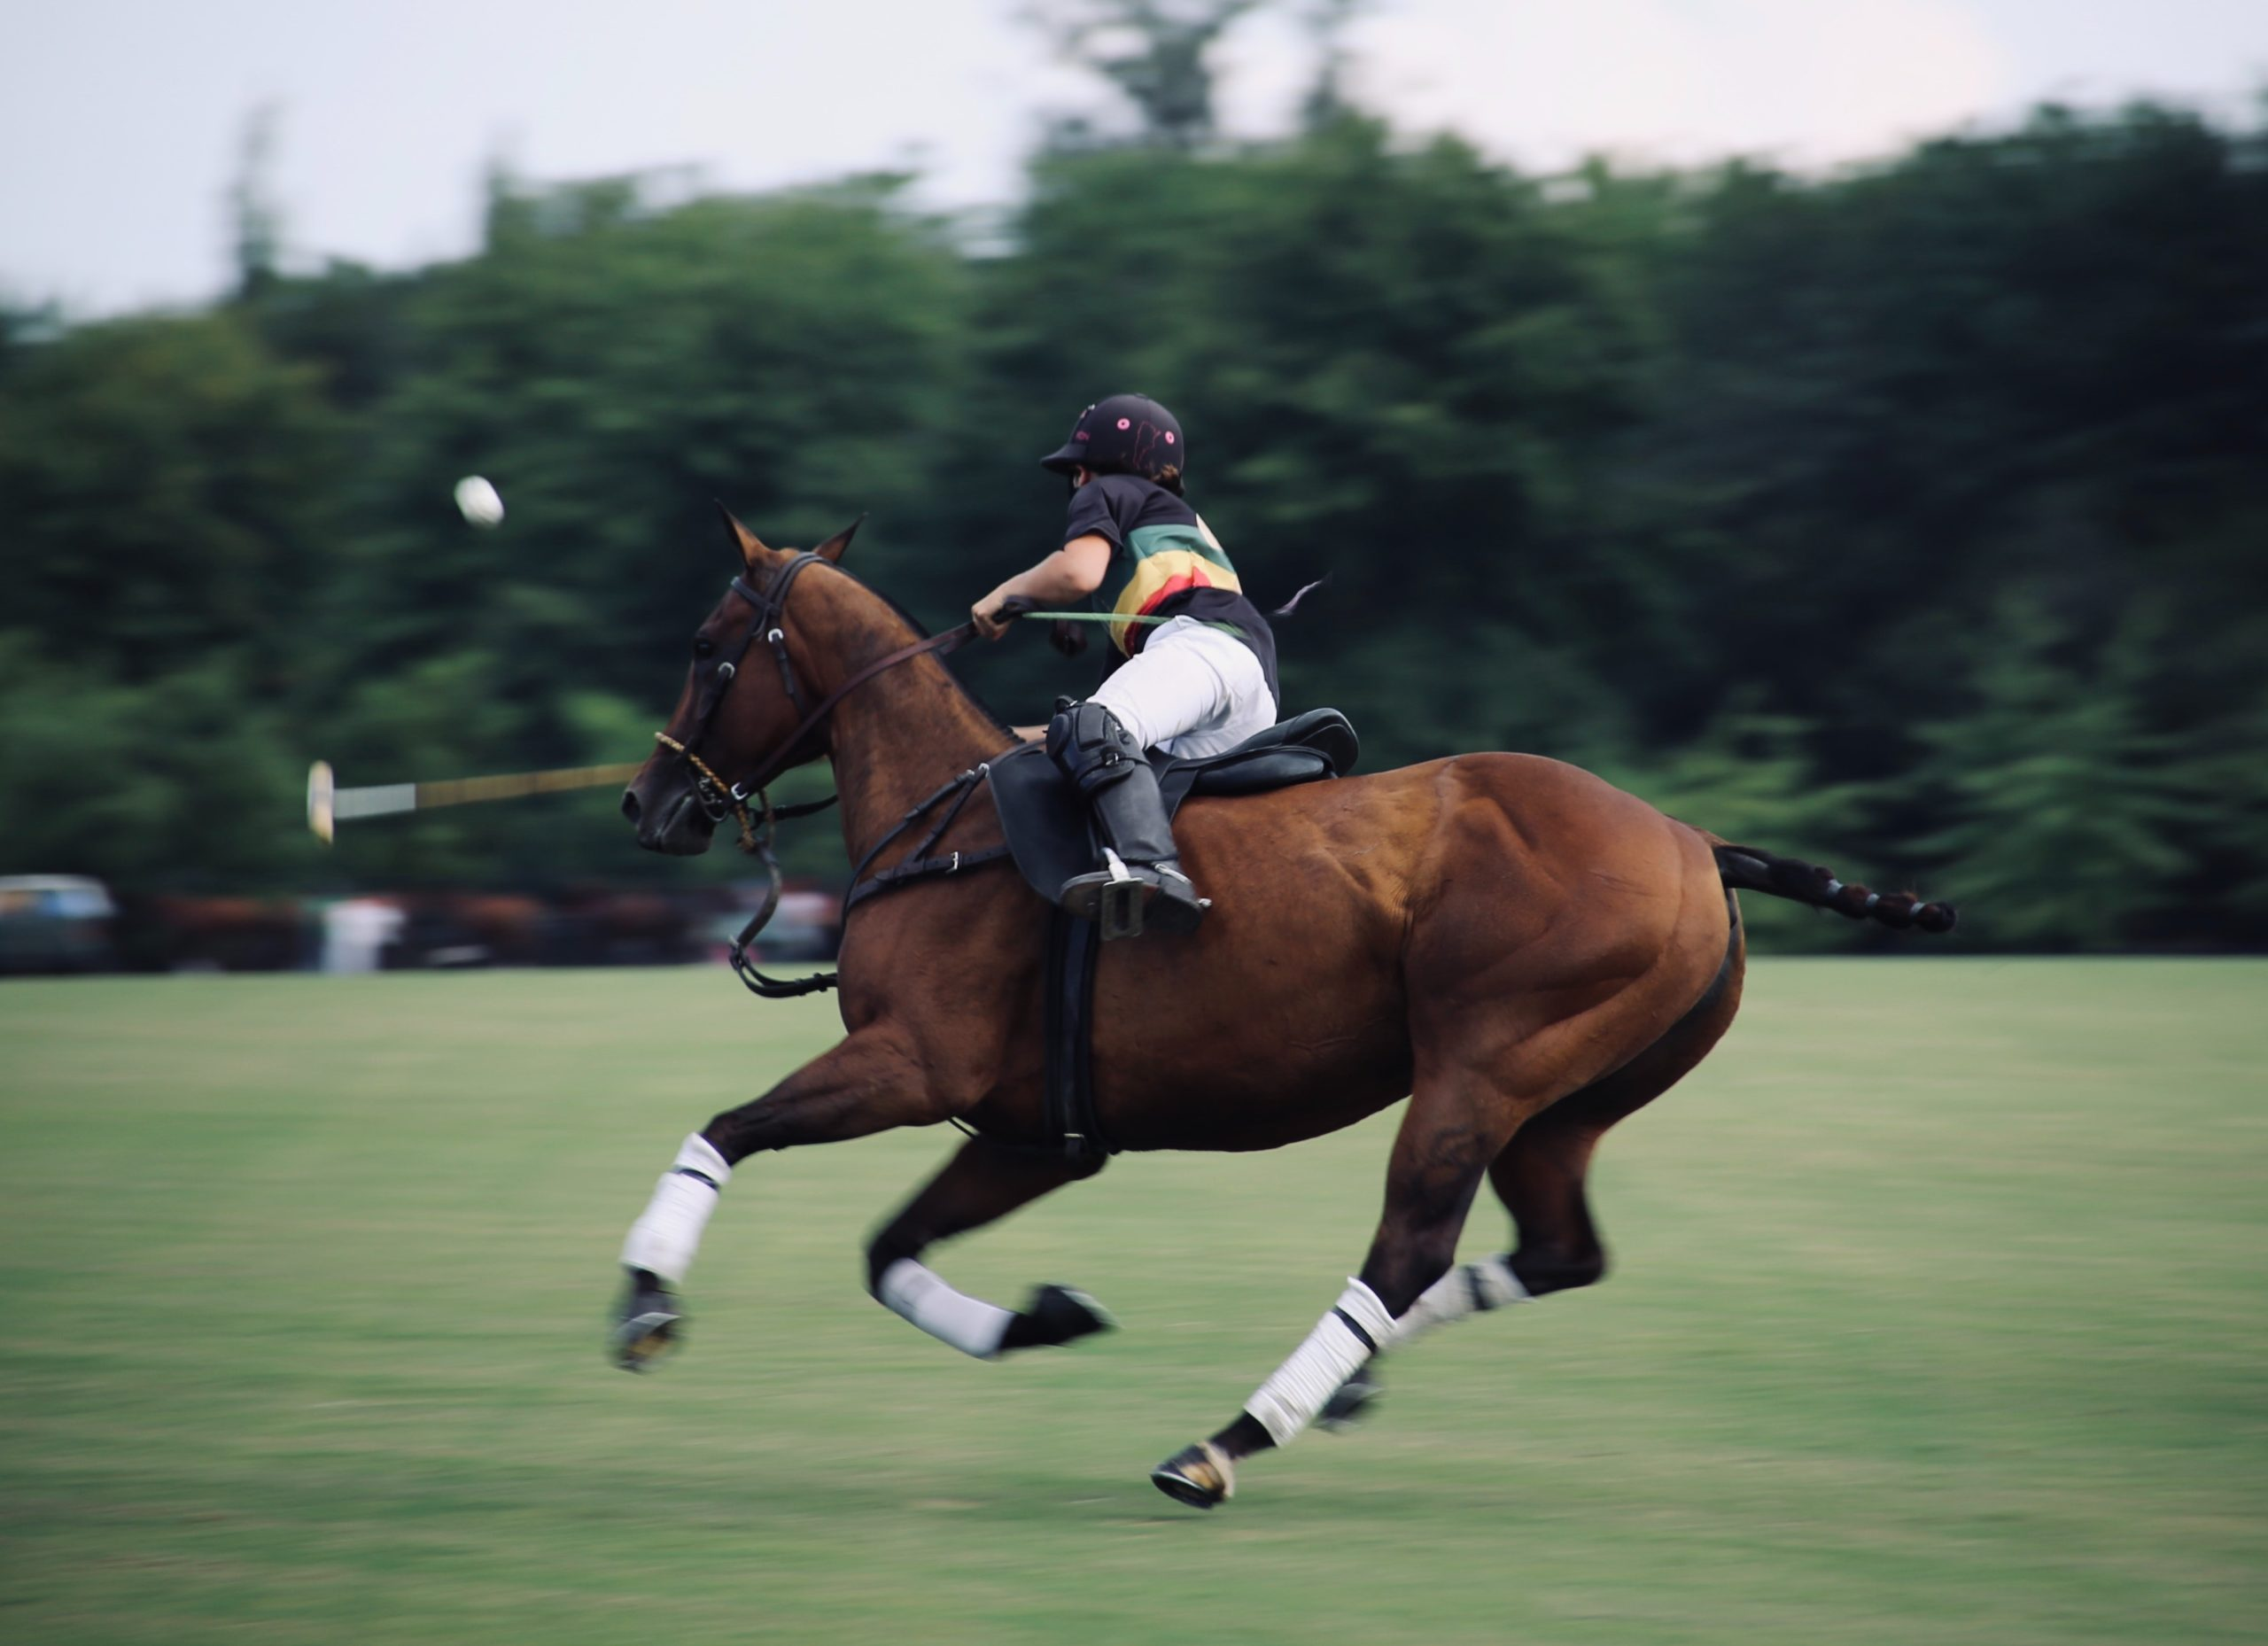 How to Play Polo Efficiently?